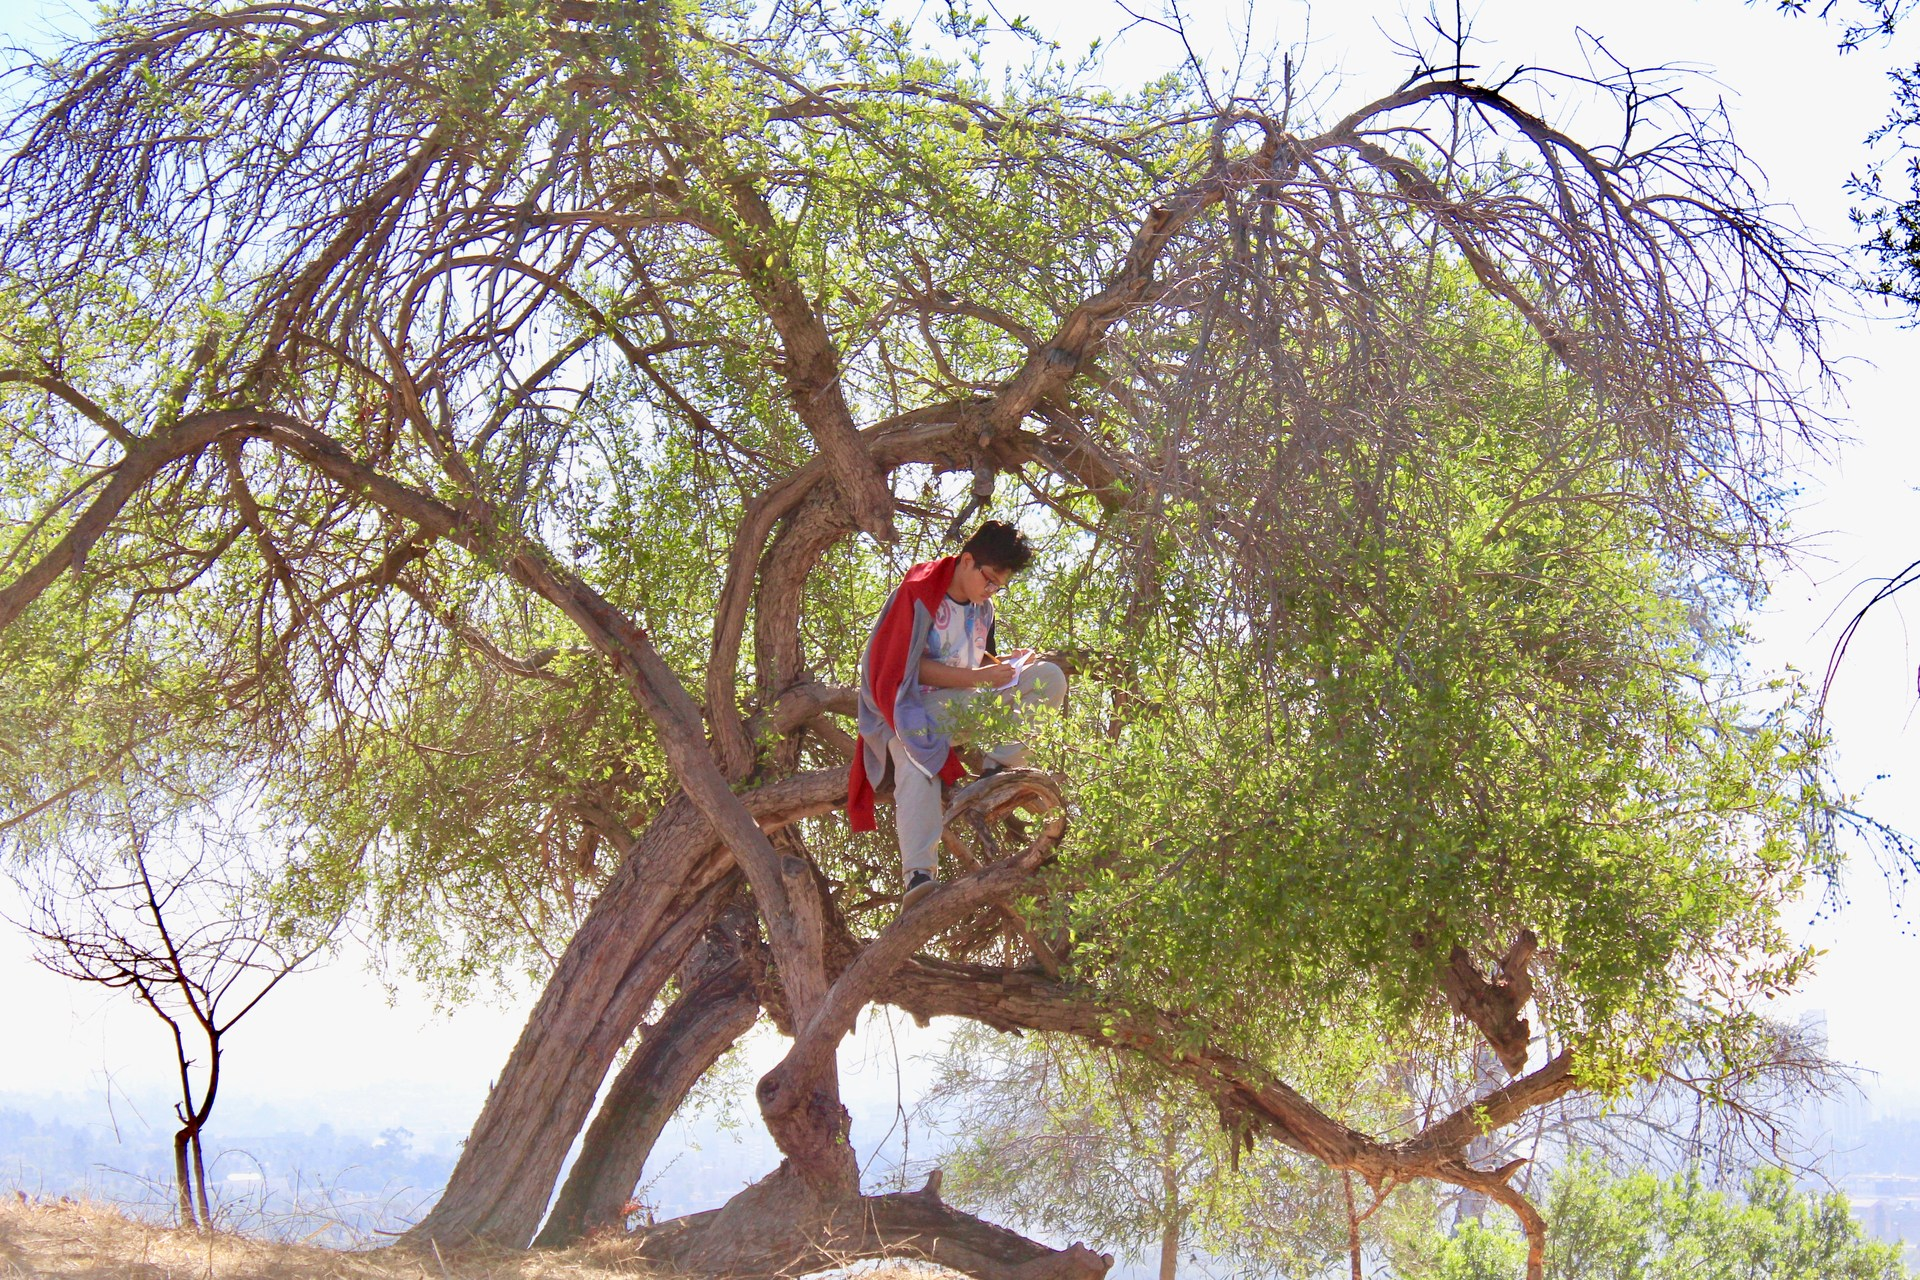 Student studying up in a tree